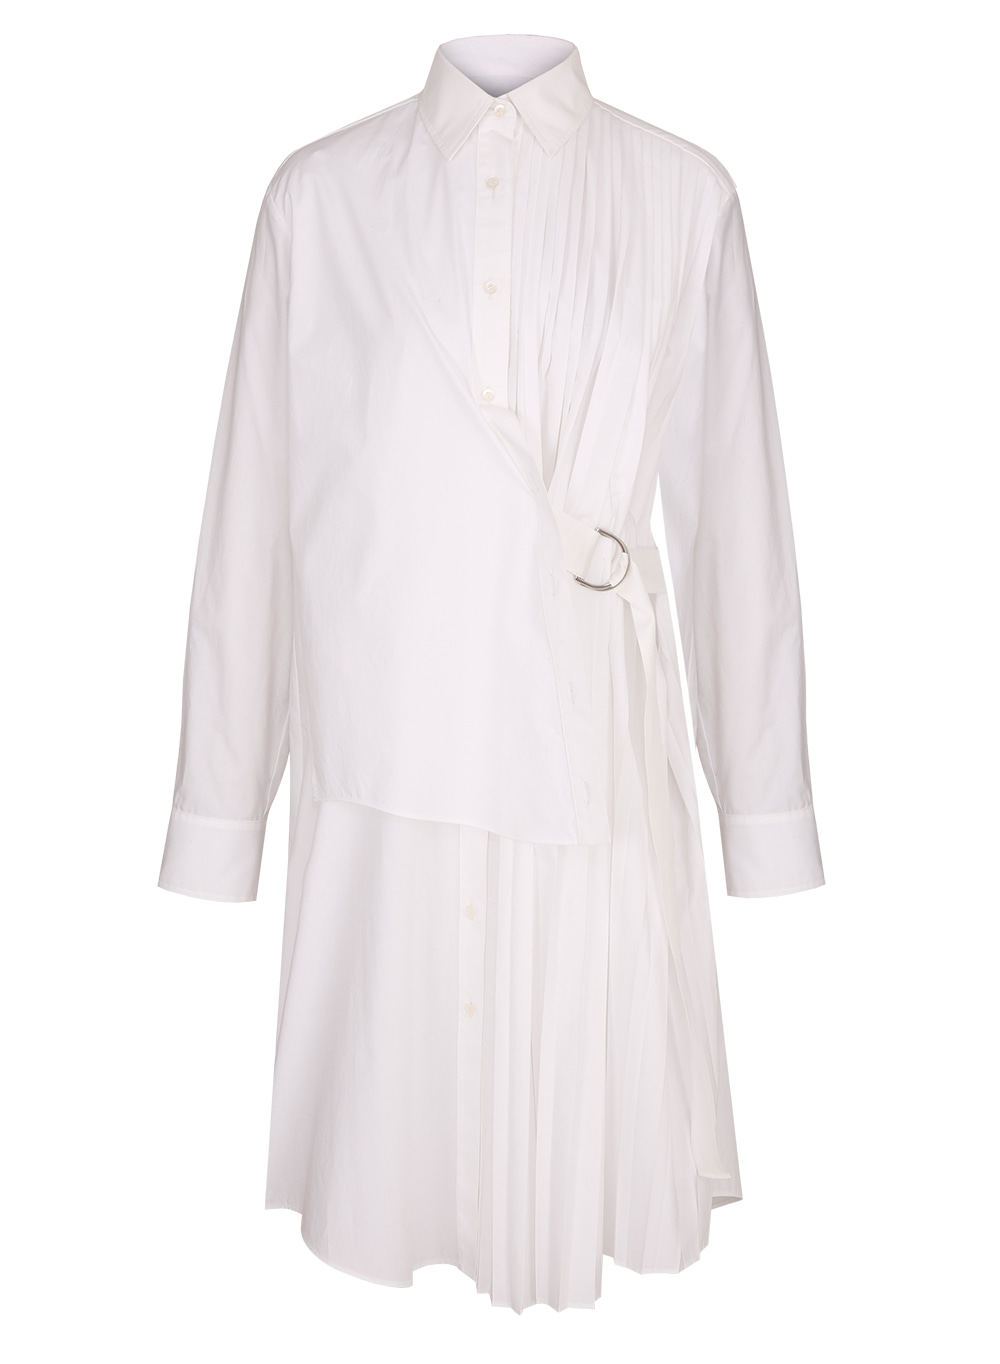 FW18 PLEATS SHIRT DRESS WHITE